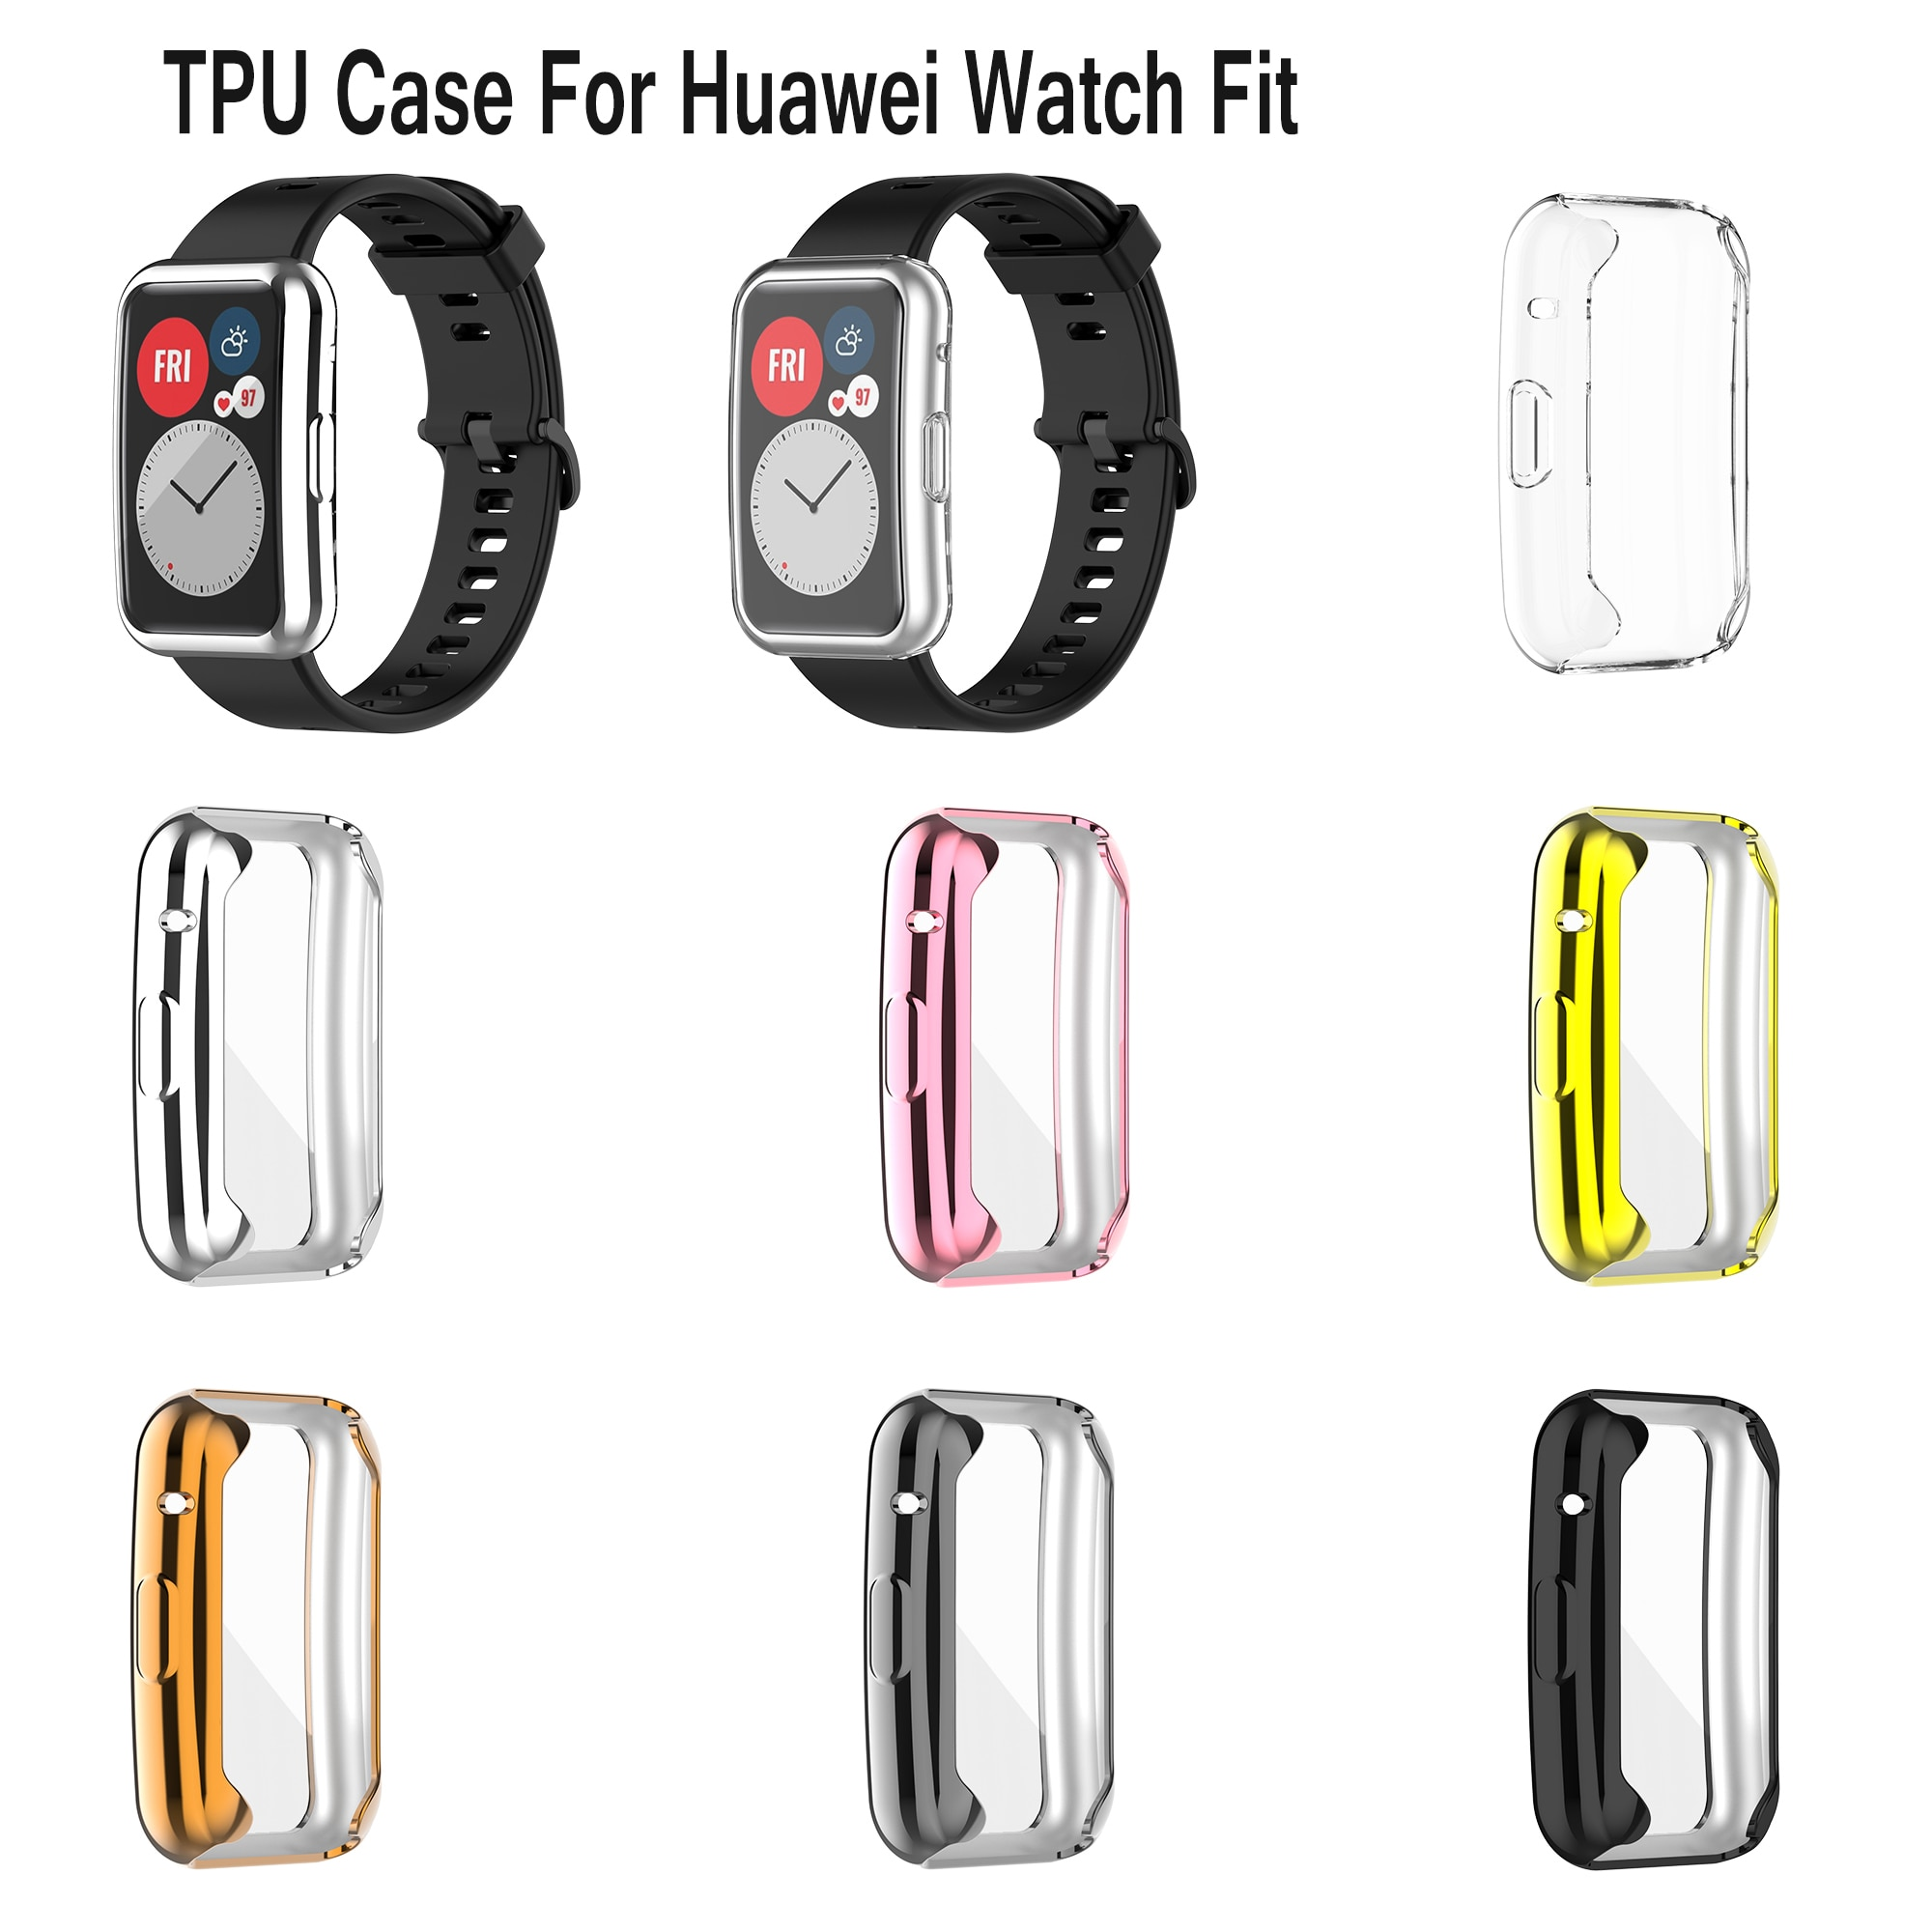 Anti-fall Plating Protective Case for Huawei Watch Fit Screen Frame Cover for Huawei Watch Fit Smart Watch Shell TPU Full Cover tpu soft silicone soft full screen glass protector case shell frame for huawei honor es watch fitting plating protective cover